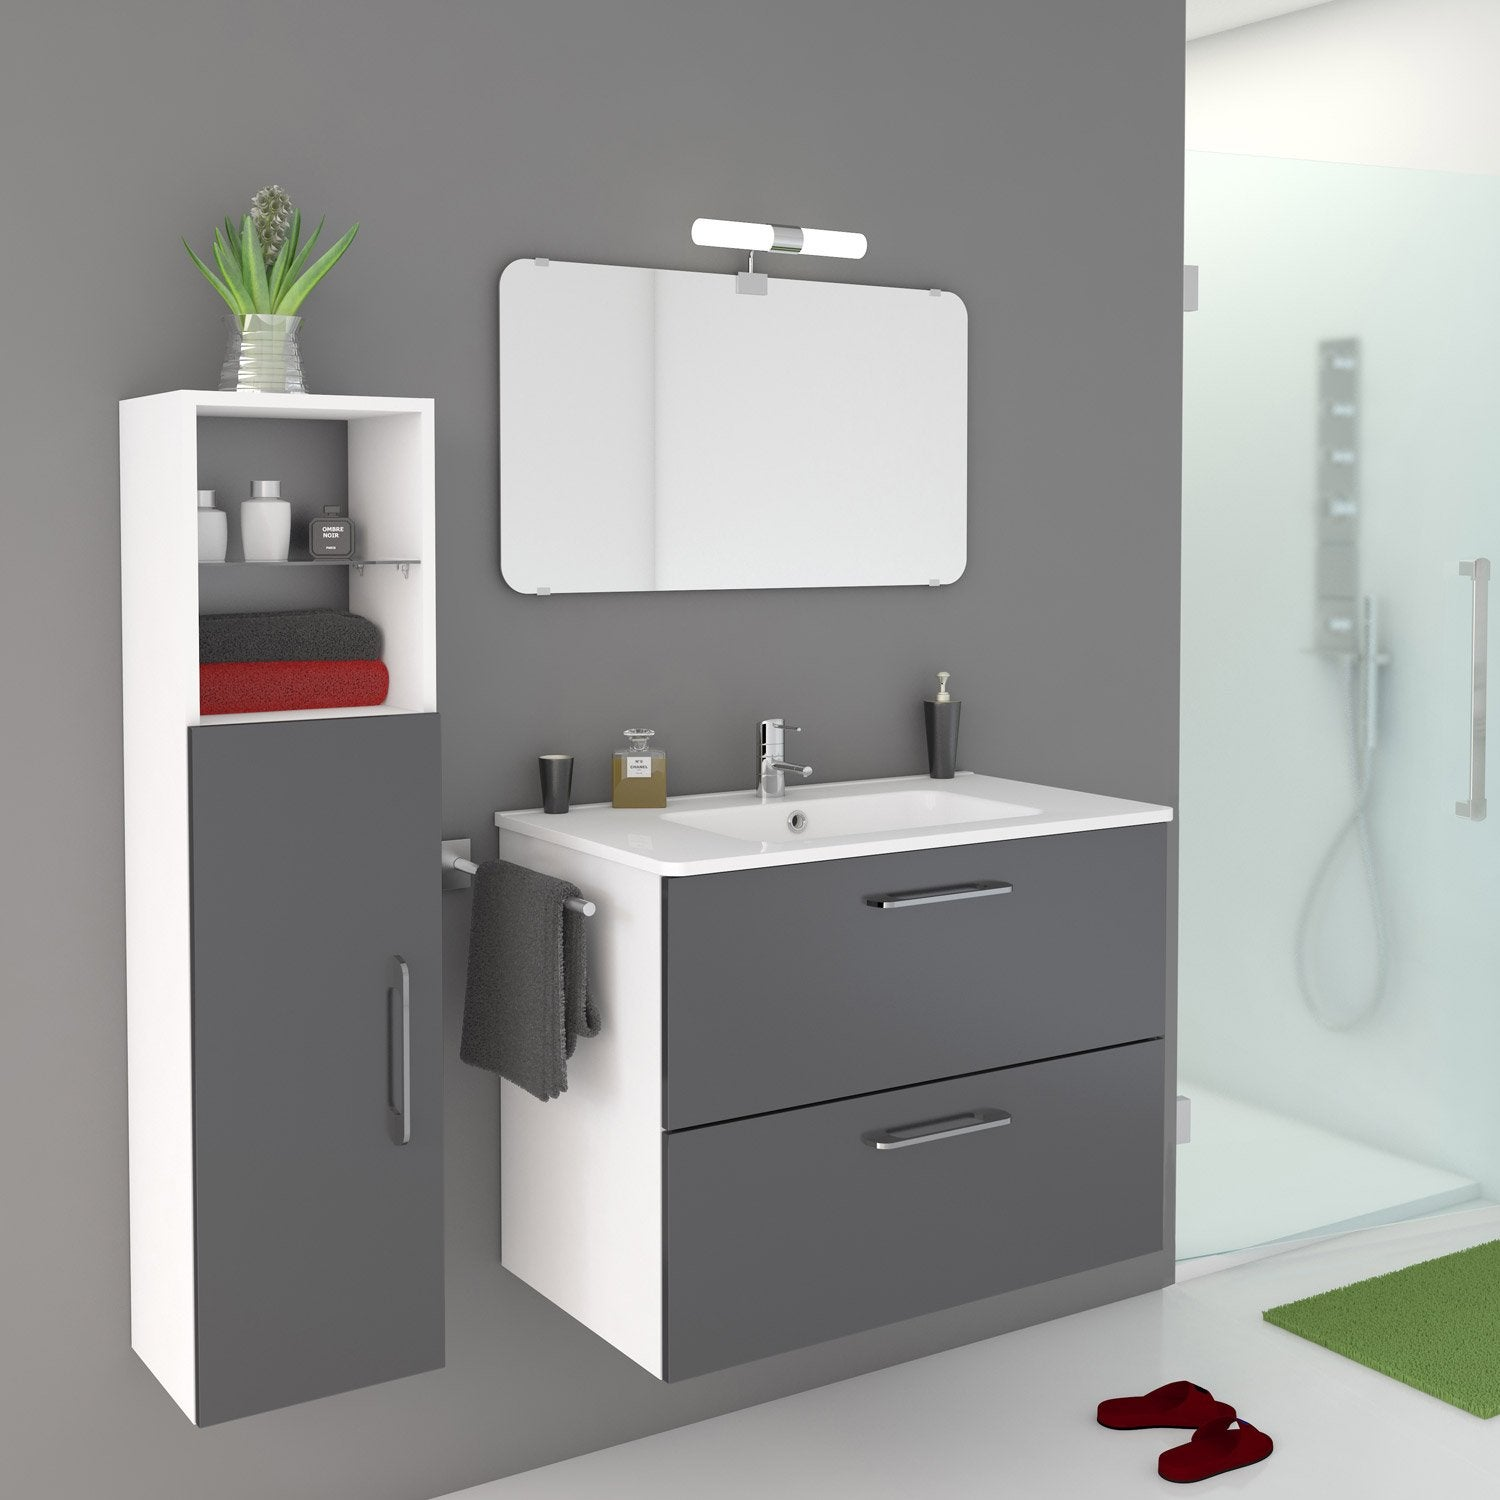 meuble de salle de bains de 80 99 gris argent happy leroy merlin. Black Bedroom Furniture Sets. Home Design Ideas